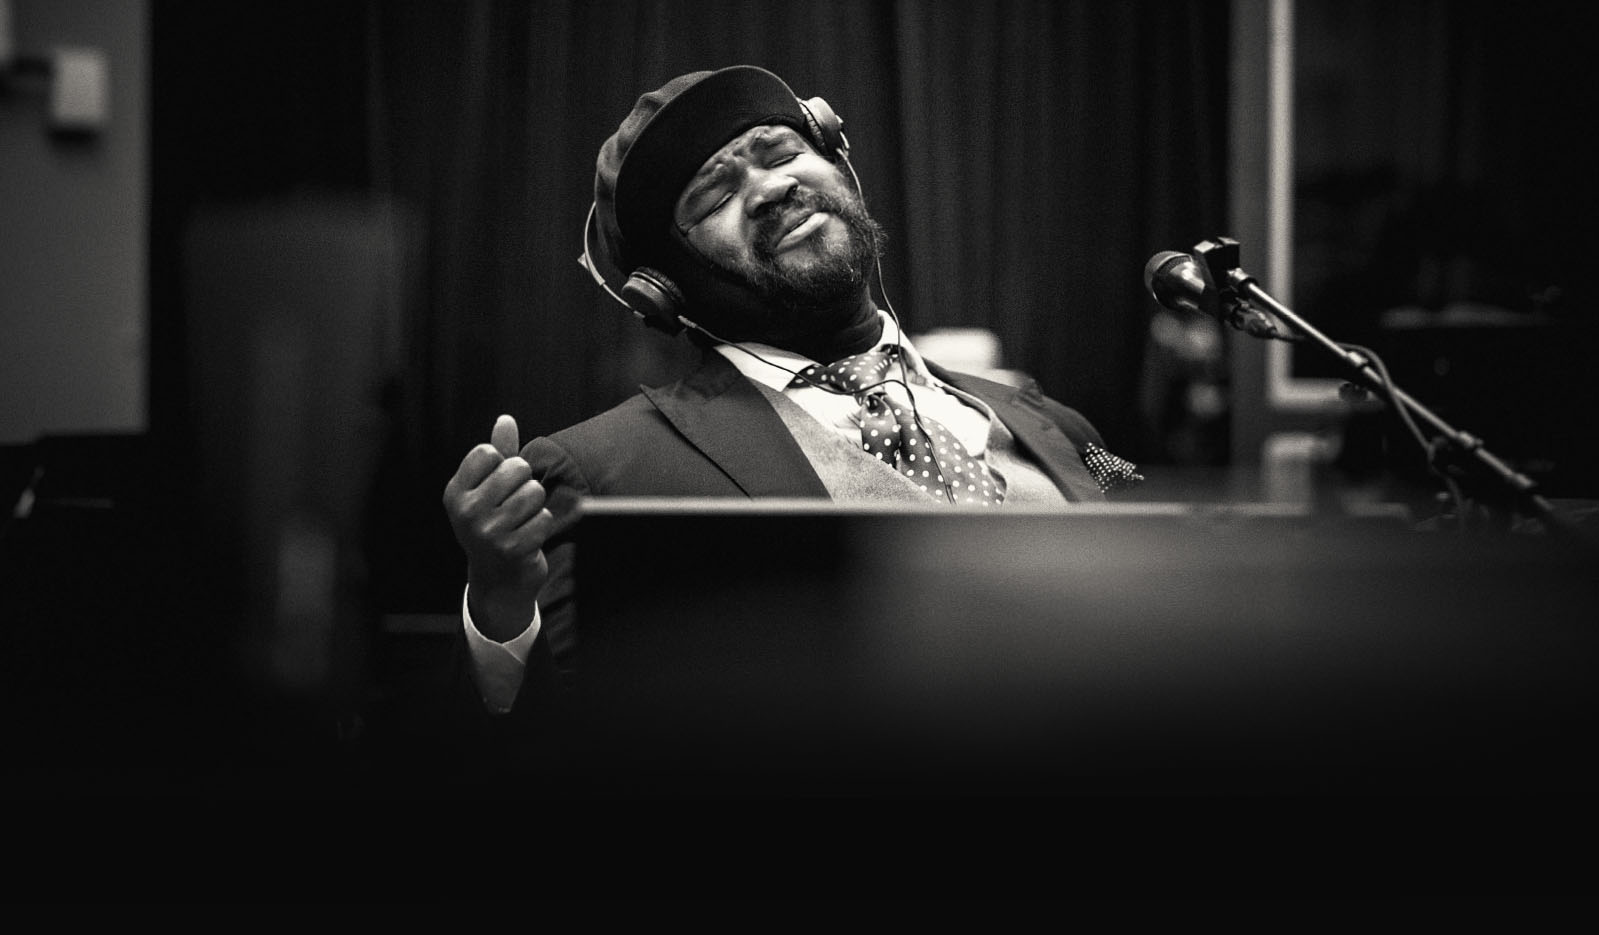 Ron 39 s muziektips ron van de steen - Gregory porter liquid spirit album download ...